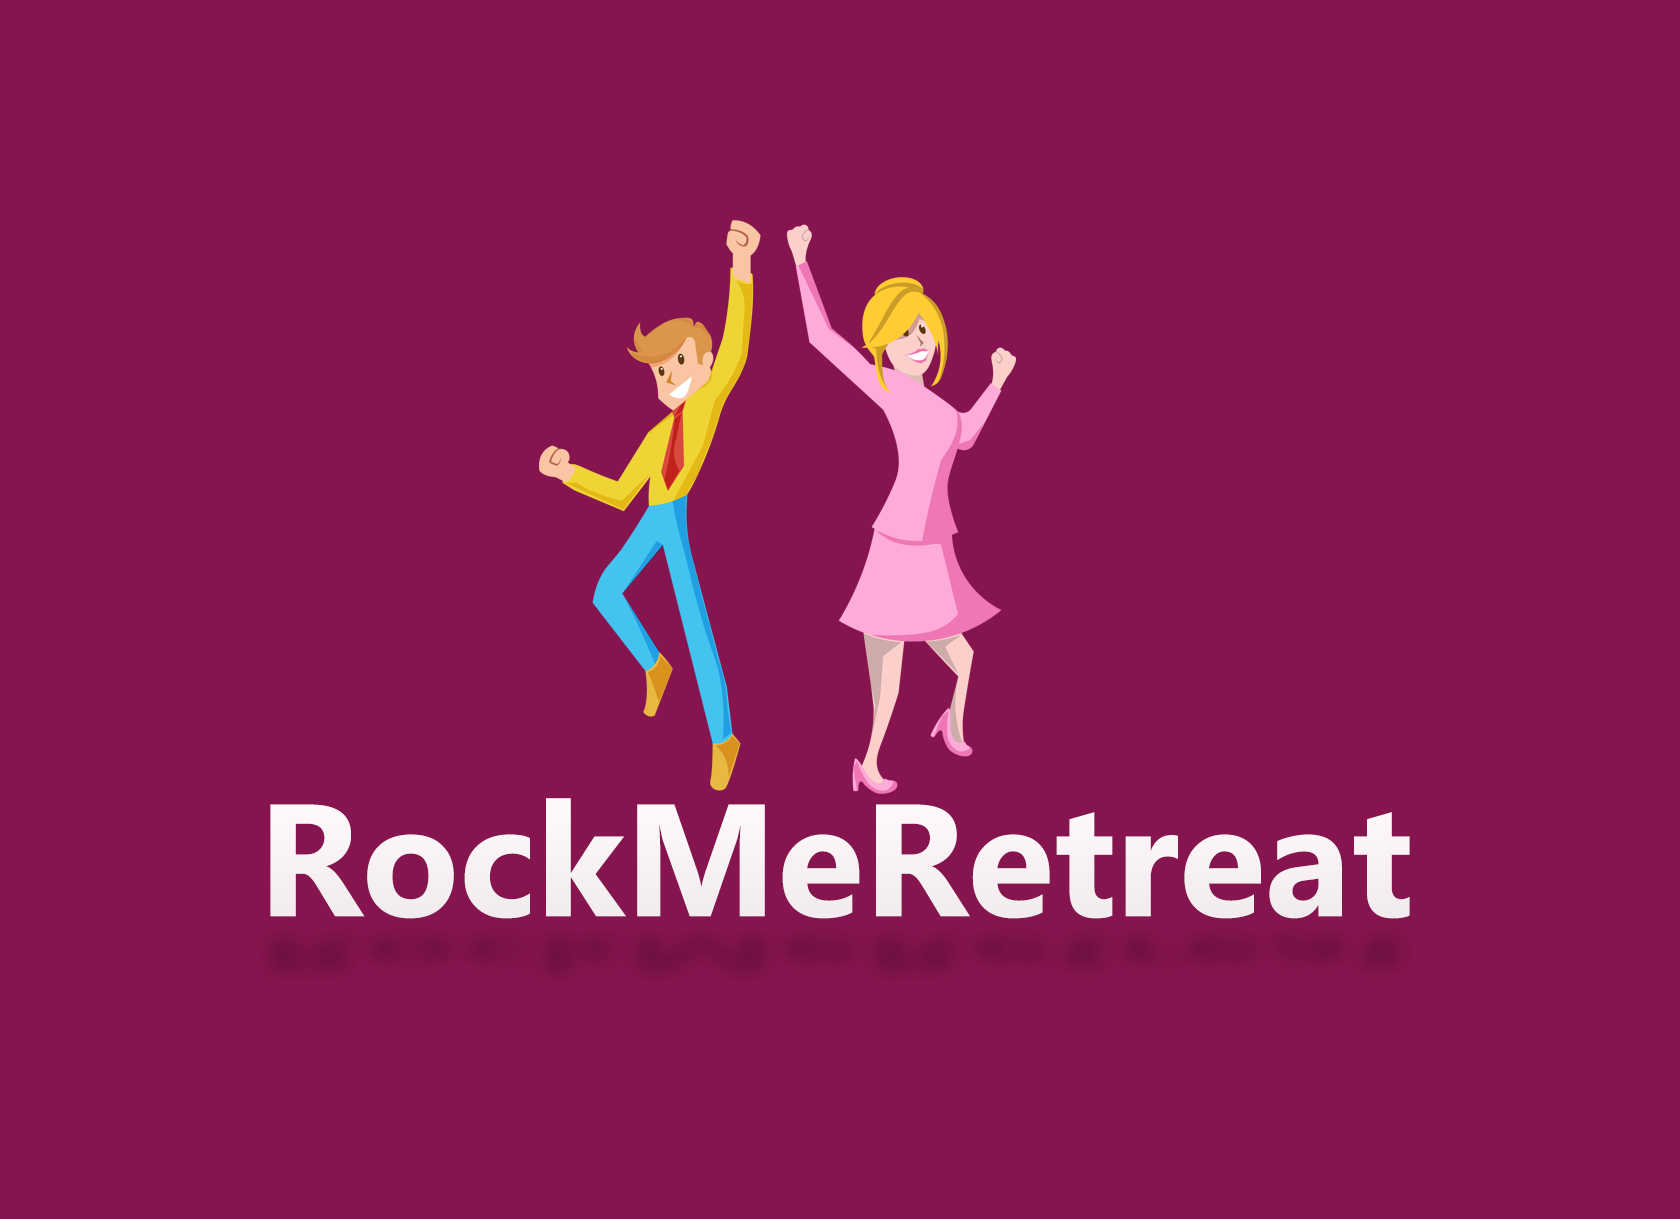 #rockmeretreat